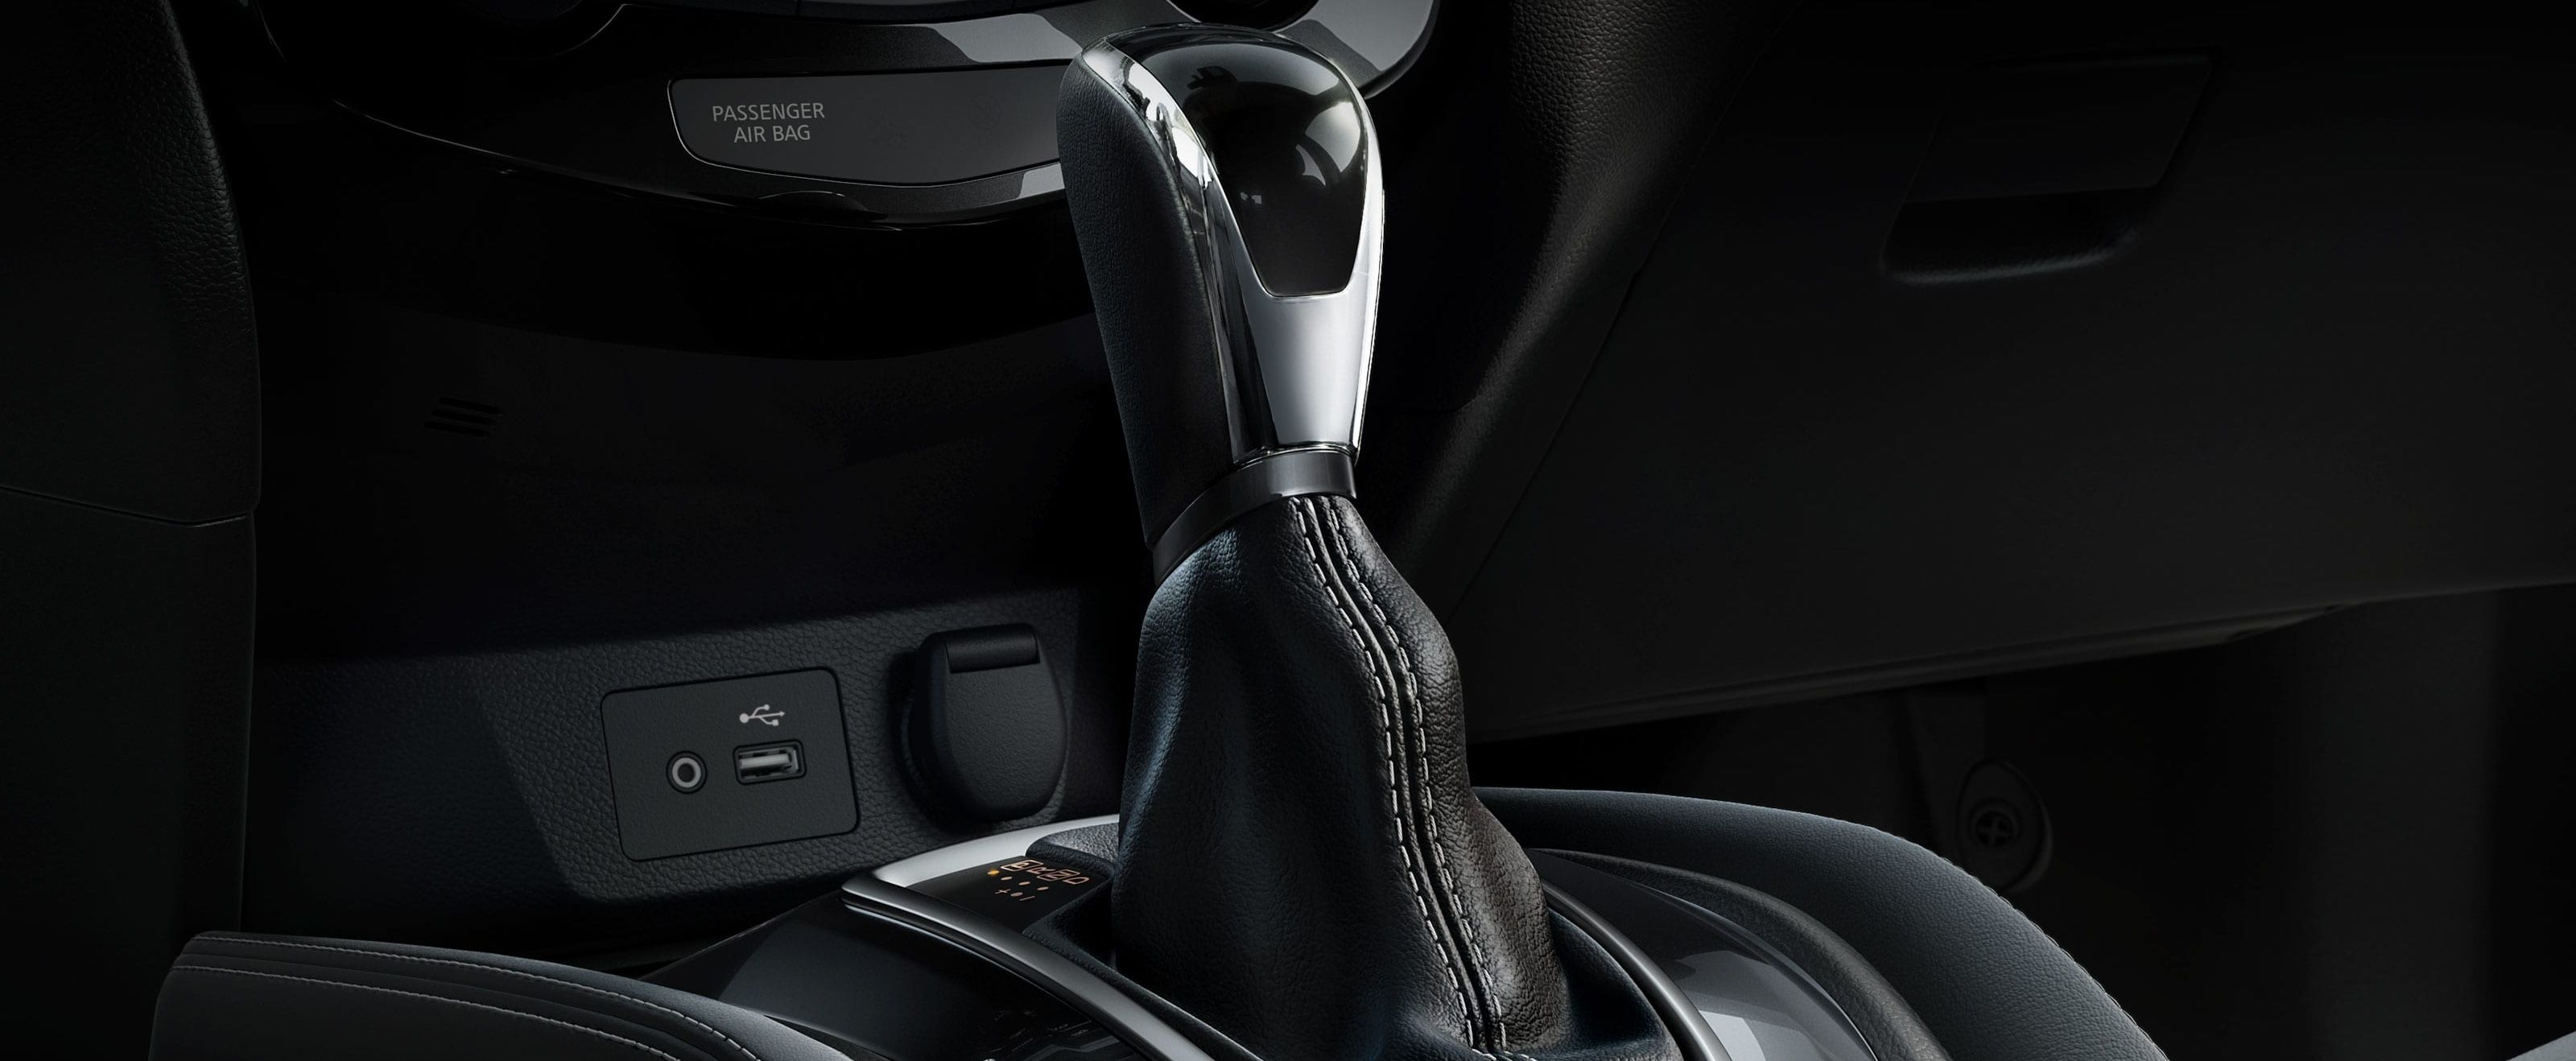 Leather Shift Knob in the 2019 Rogue